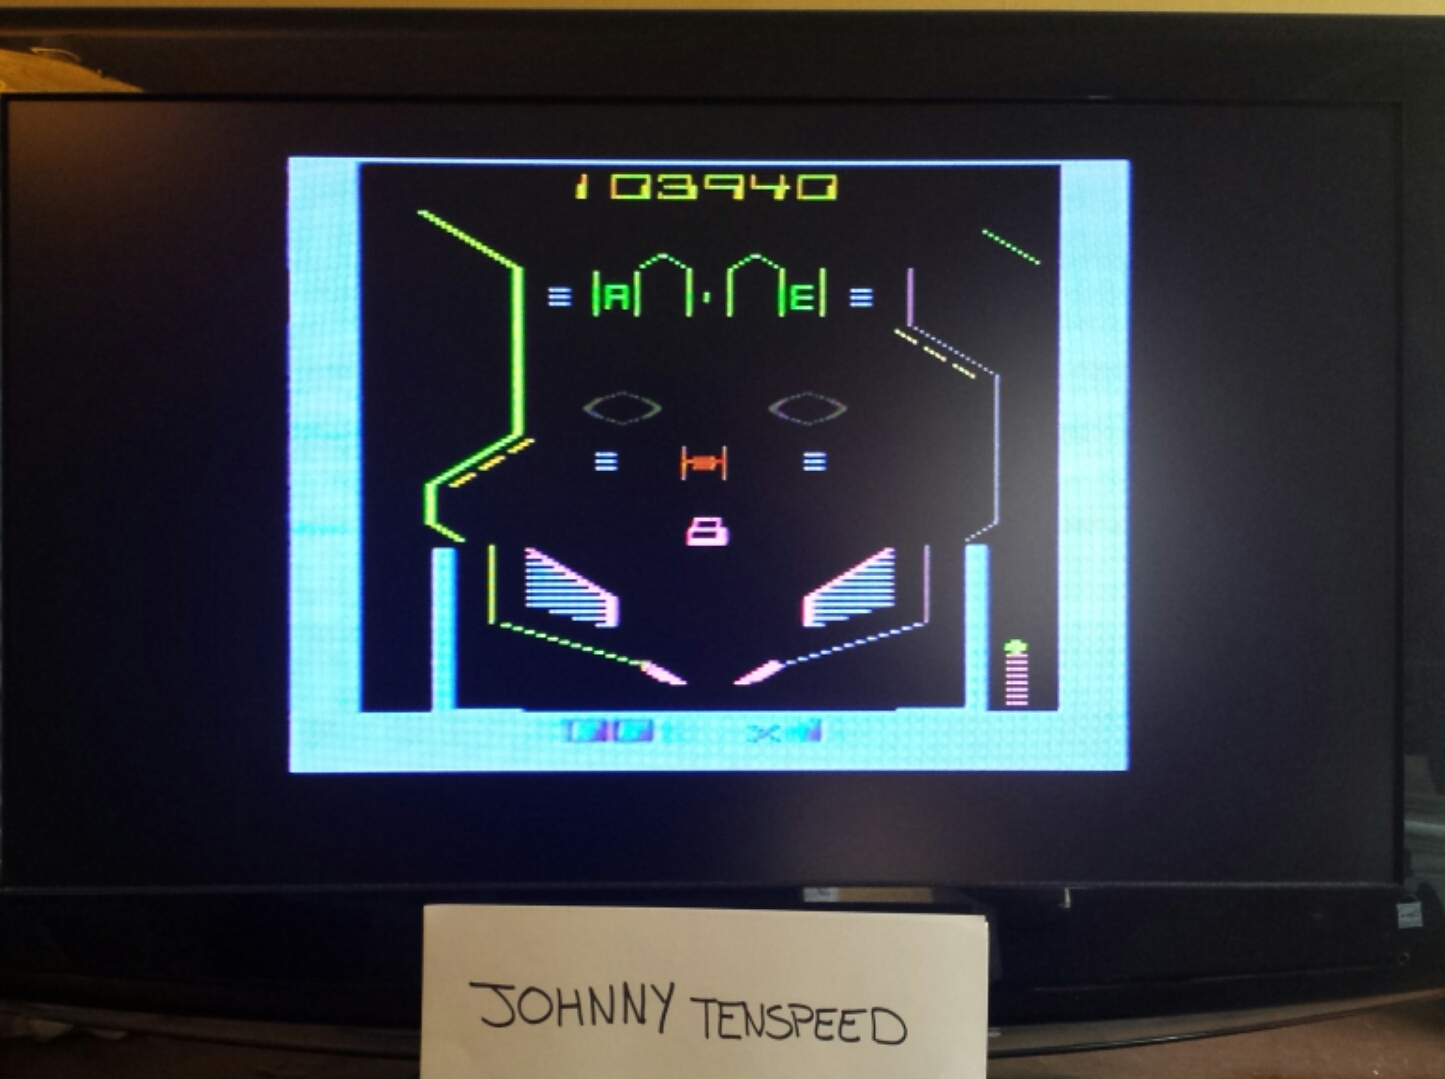 JohnnyTenspeed: Bumper Bash (Atari 2600) 103,940 points on 2017-08-13 16:31:44